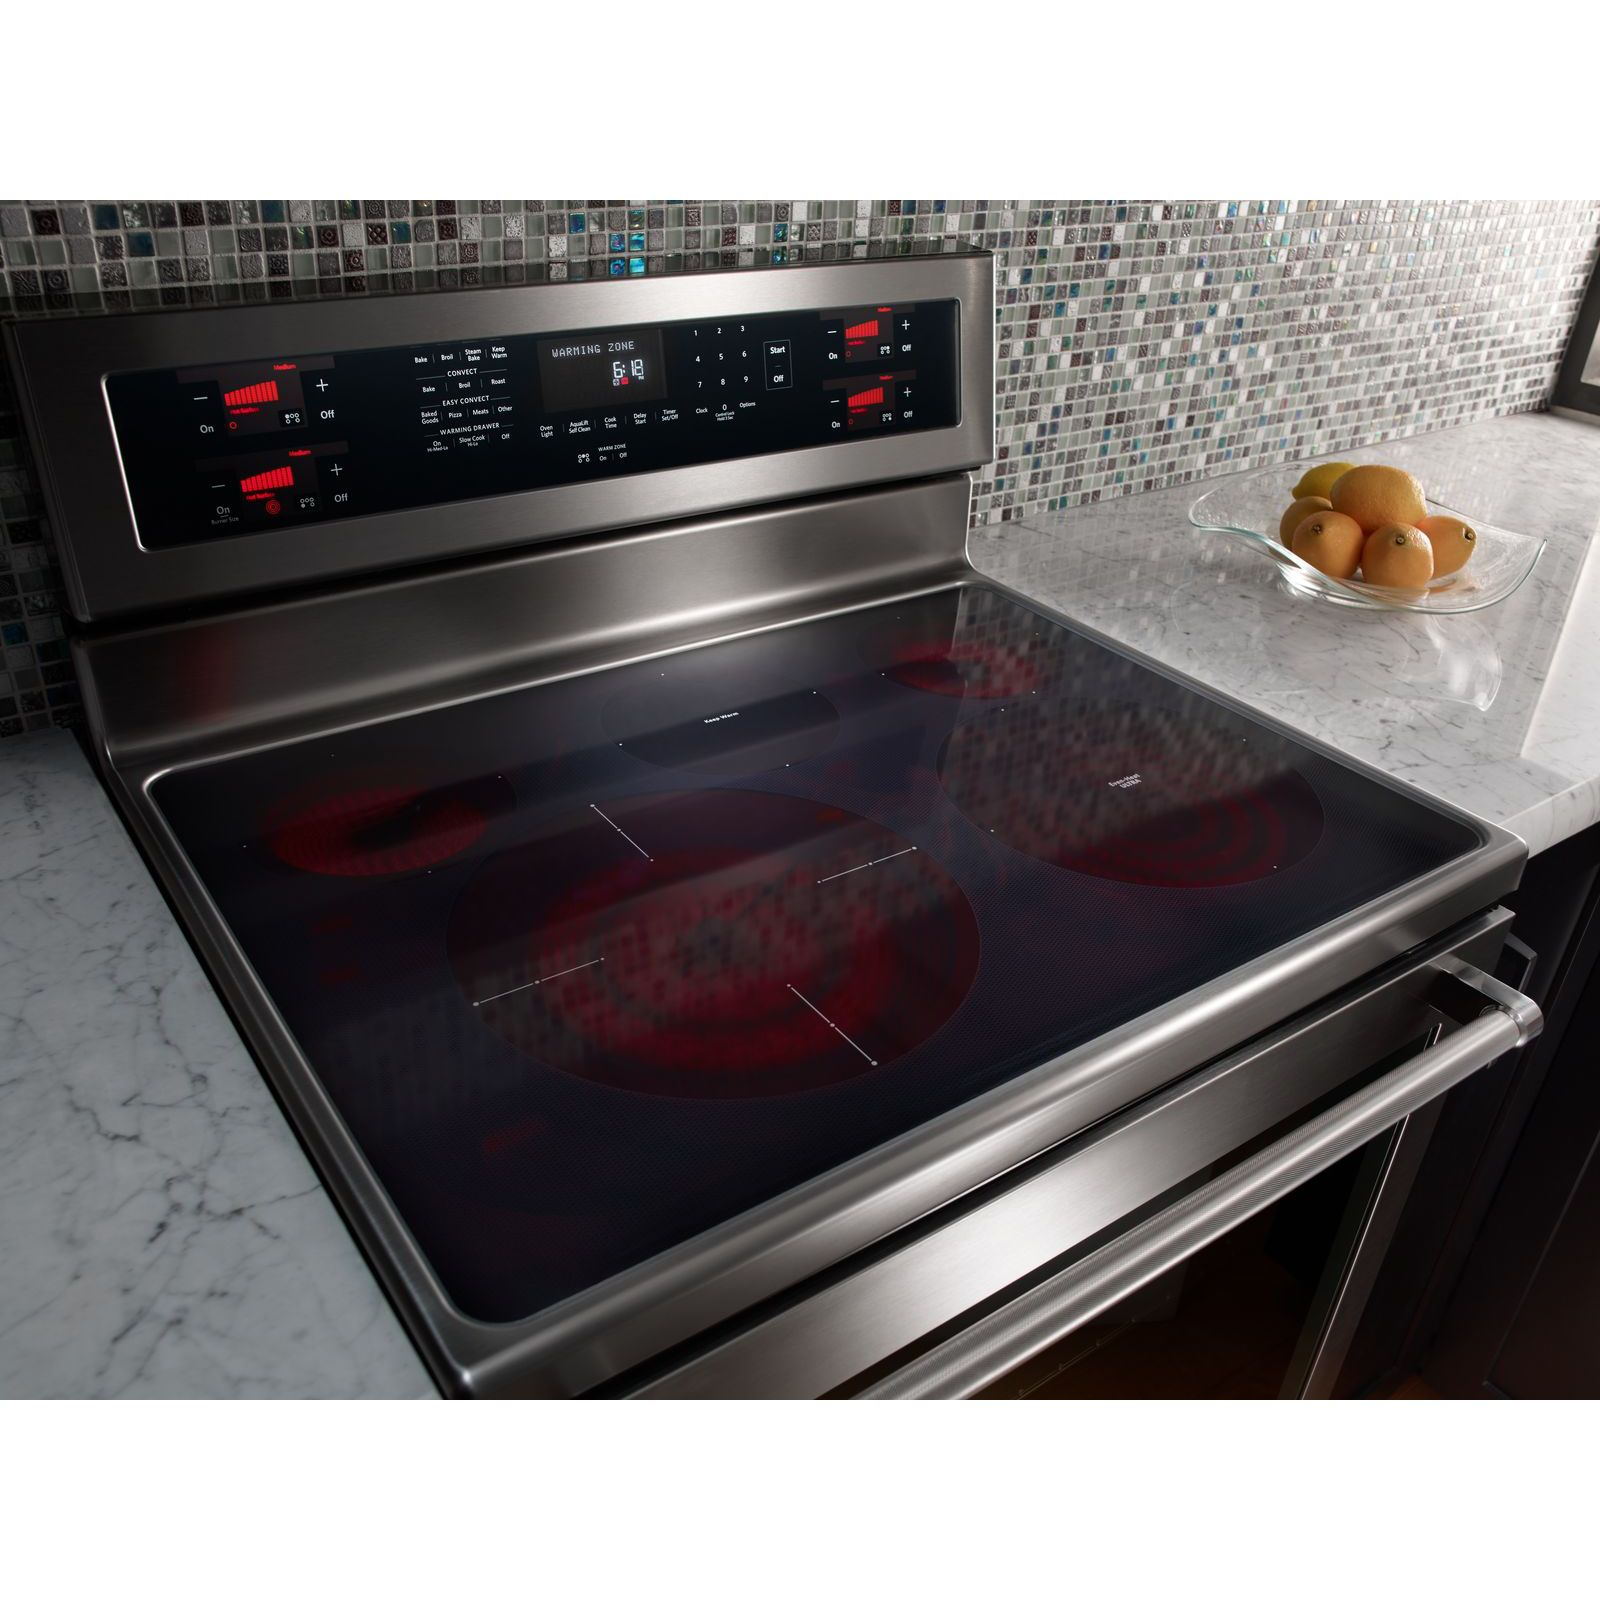 KitchenAid KFES530ESS 6.4 cu. ft. Freestanding Electric Range - Stainless Steel